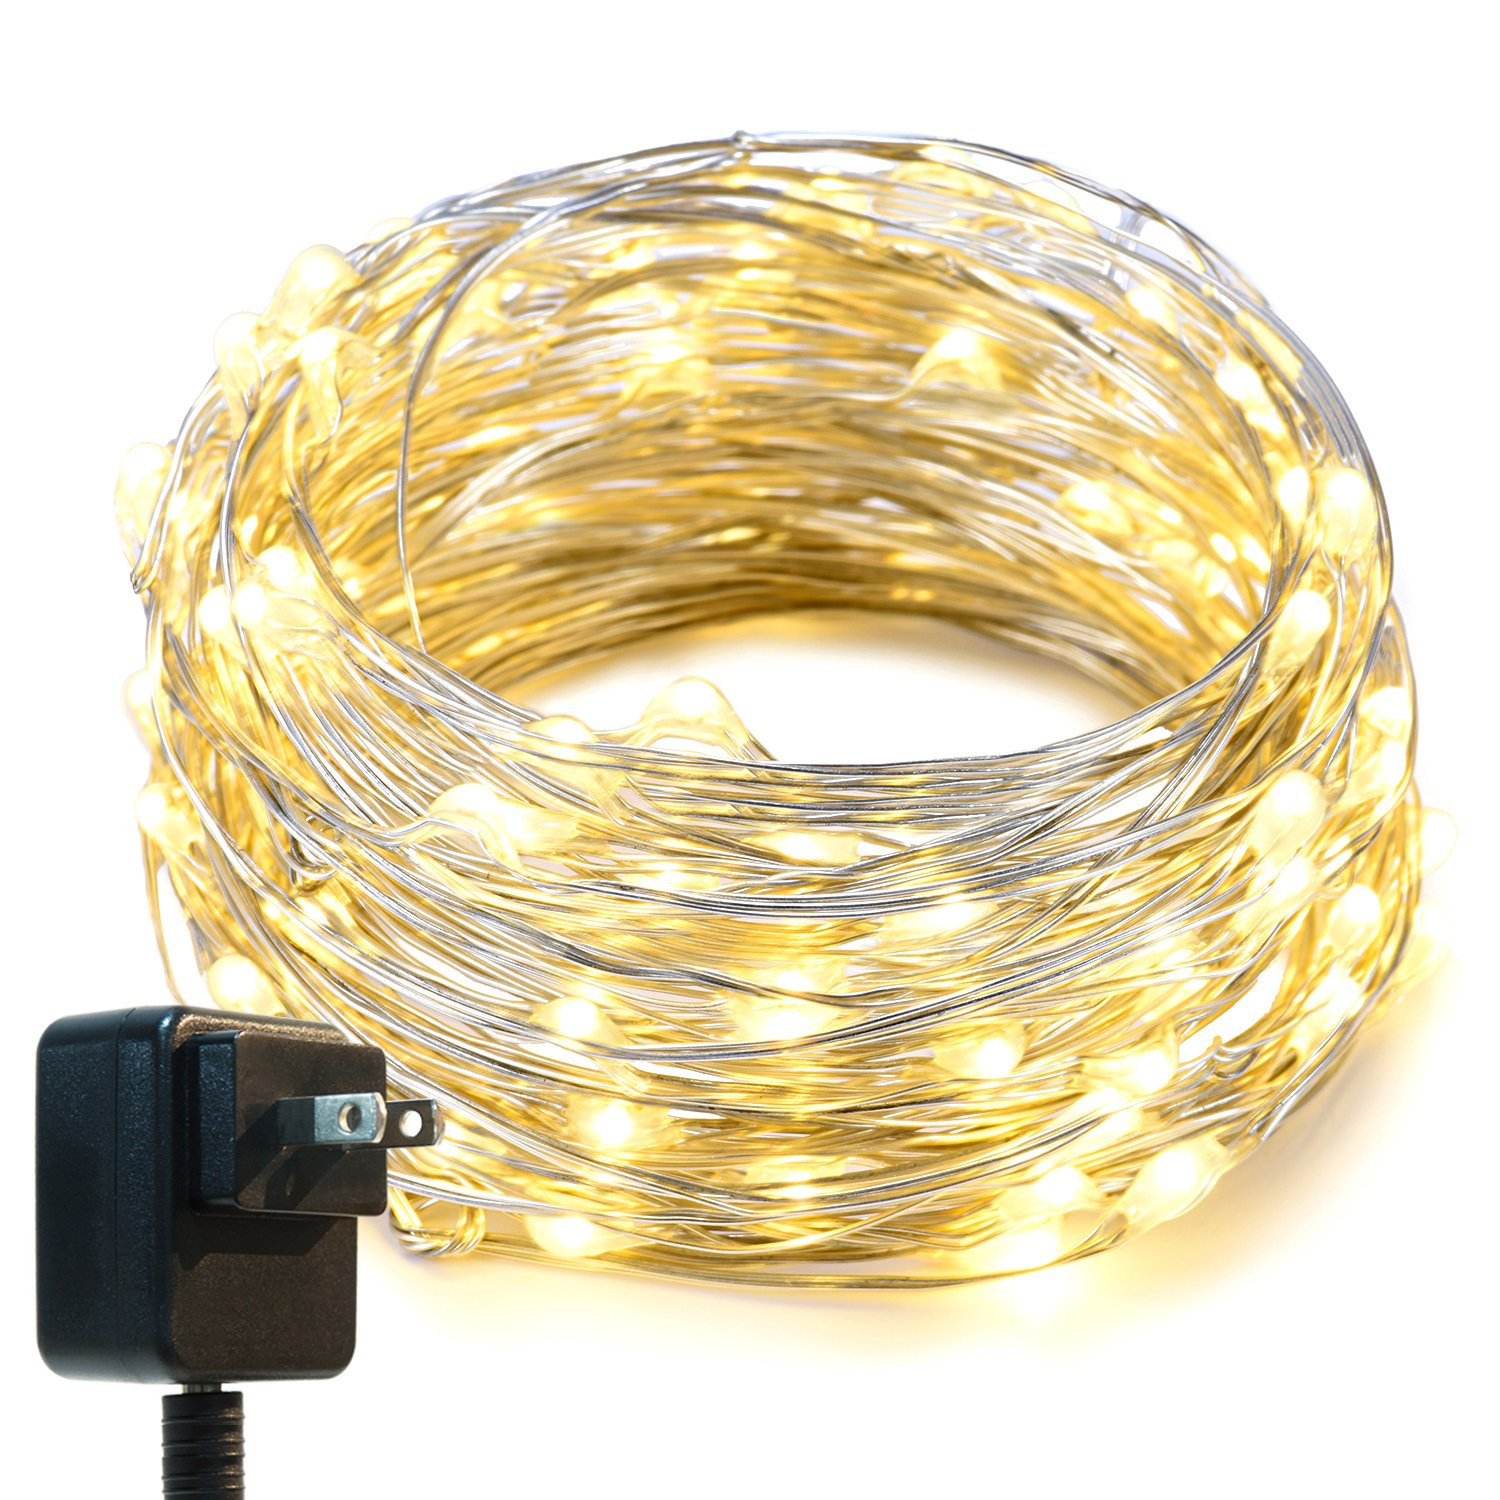 String Lightsoak Leaf 33Ft Led Starry Lights With Ul Certified 3V Power Adapt.. 14